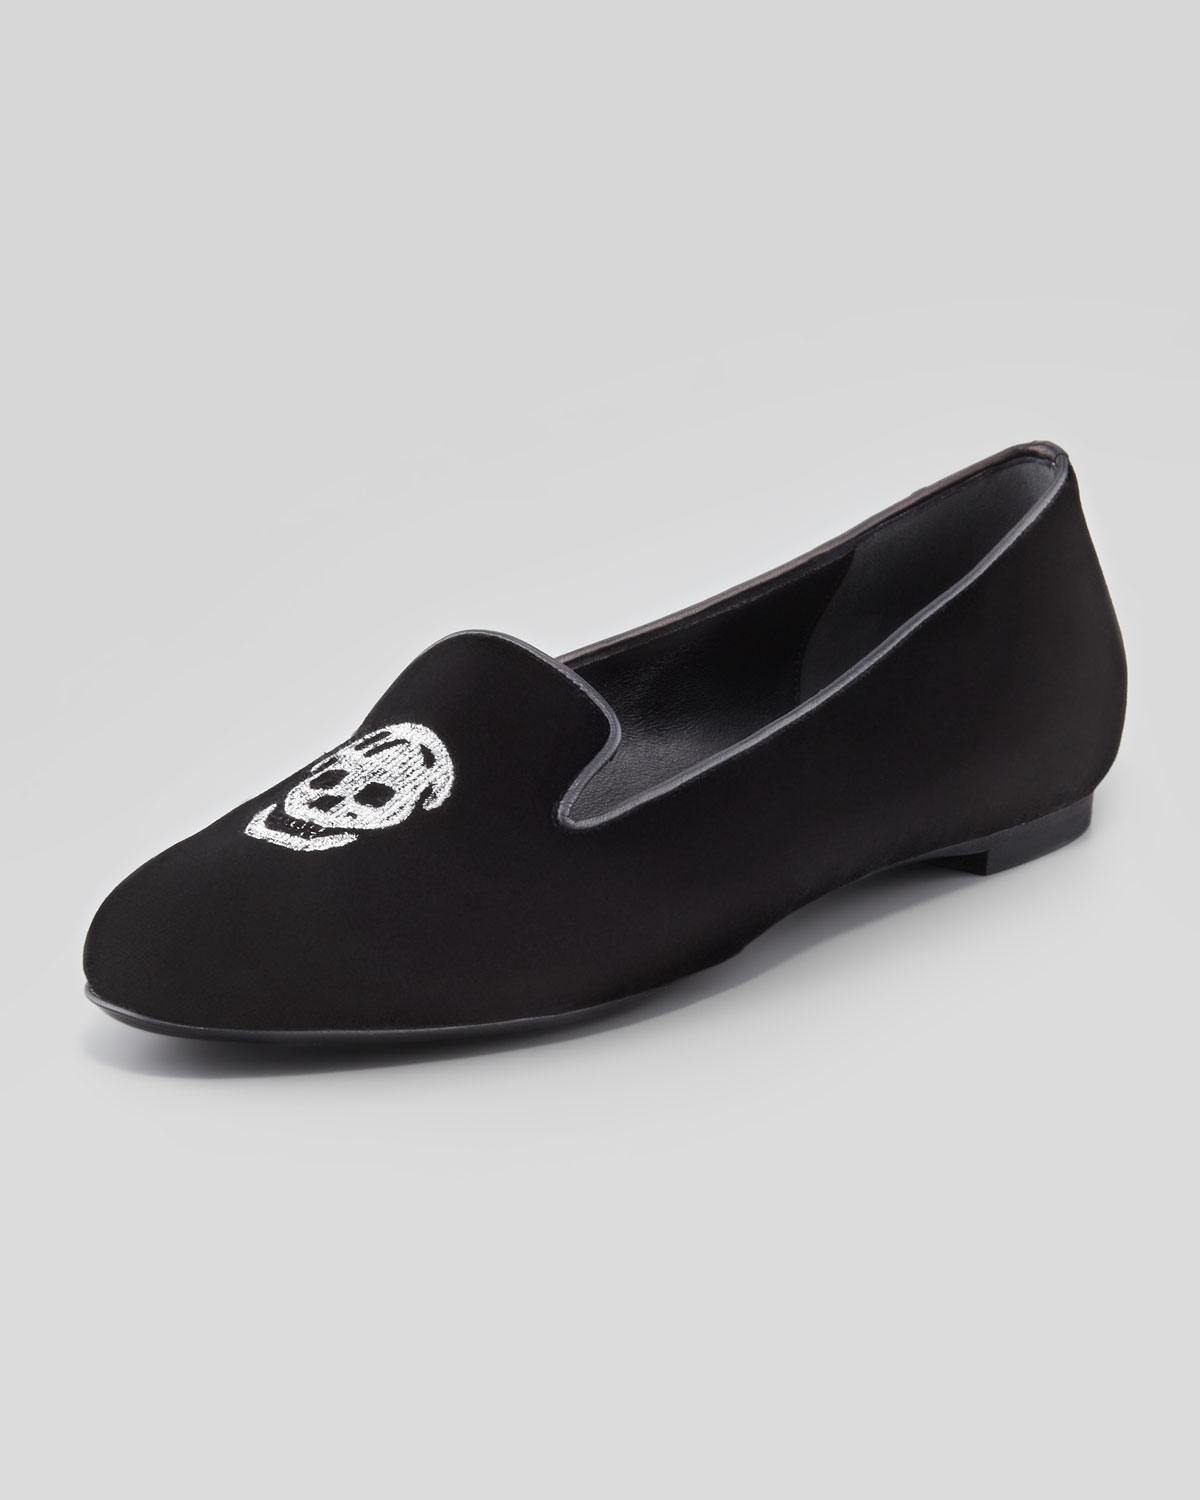 6f7f1a7fa98 Lyst - Alexander McQueen Embroidered Skull Smoking Slipper Black in ...